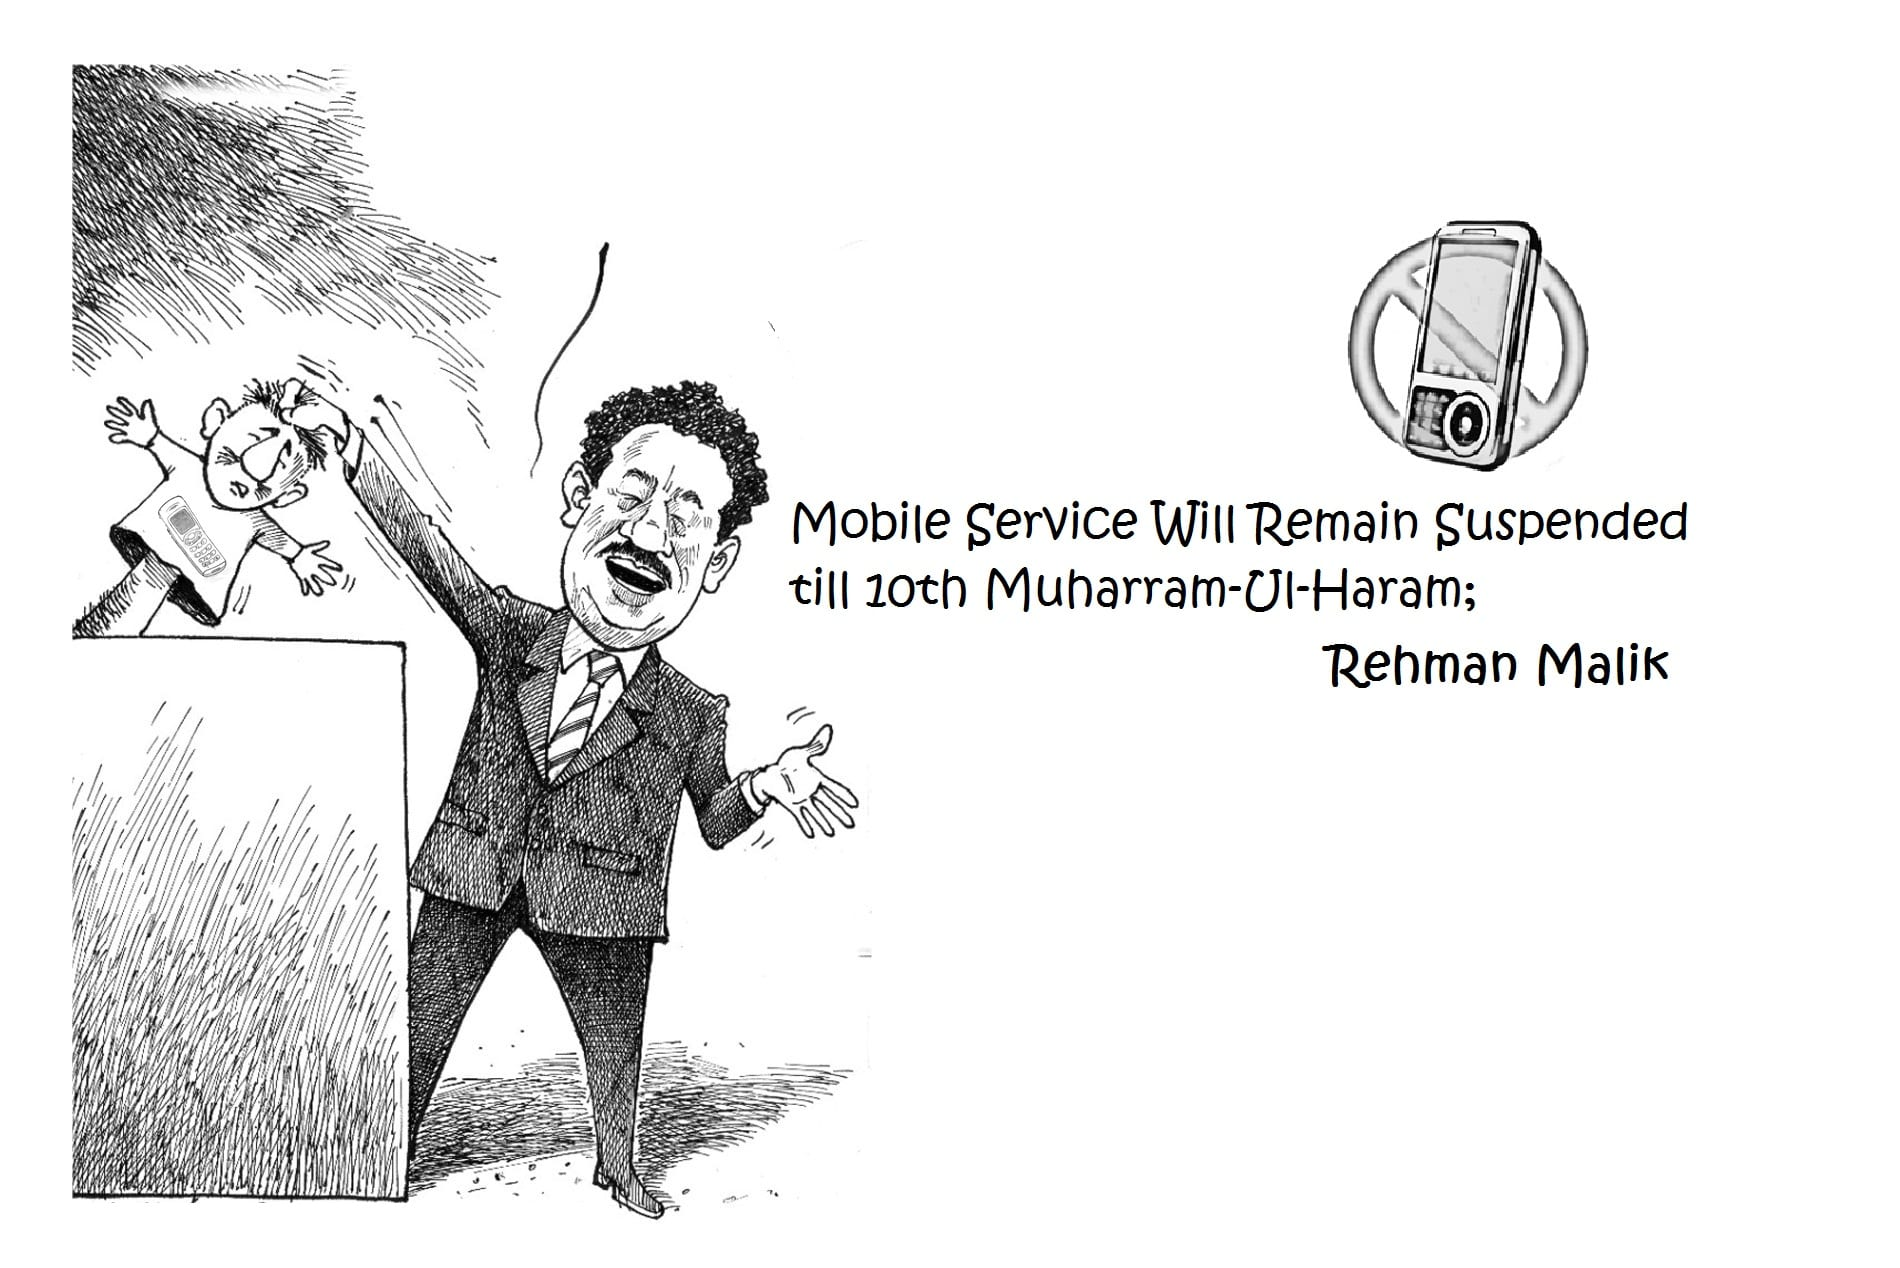 Mobile Service Will Remain Suspended till 10th Muharram-Ul-Haram